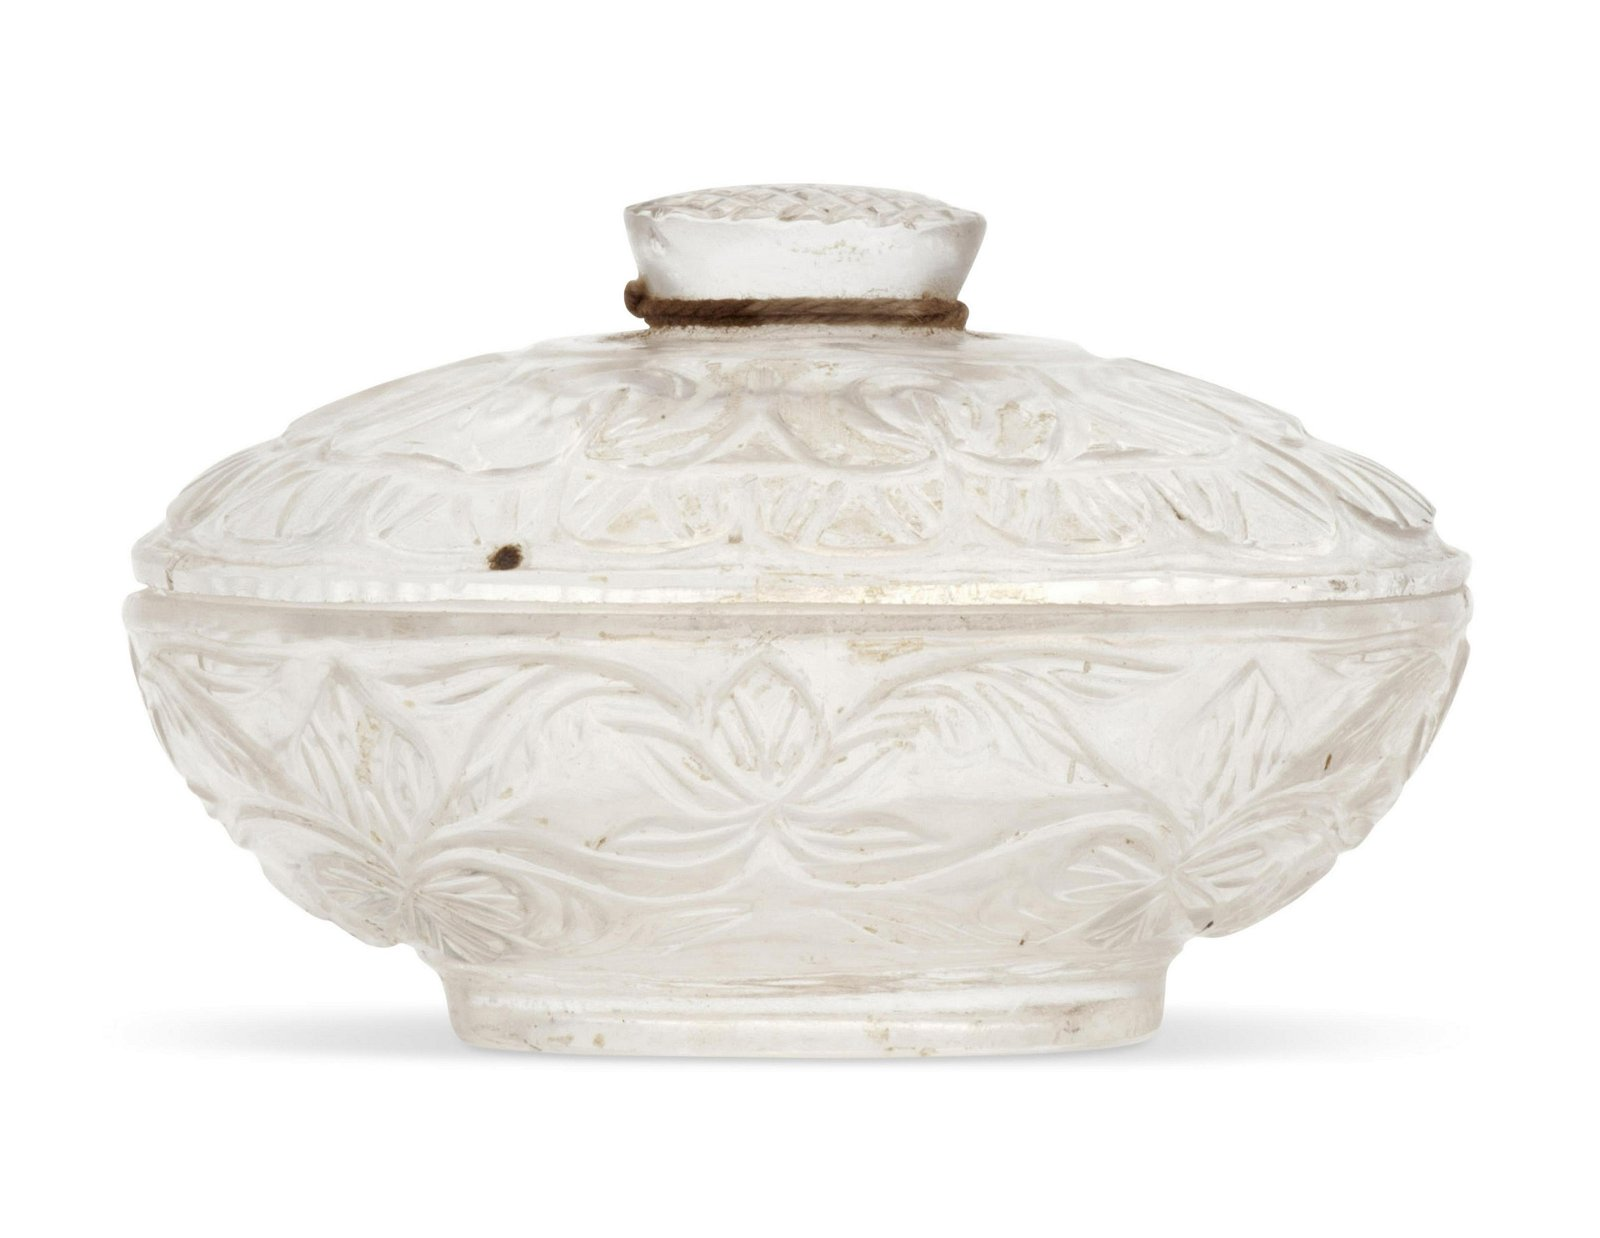 A SMALL ROCK CRYSTAL MUGHAL-STYLE OVAL BOX AND COVER